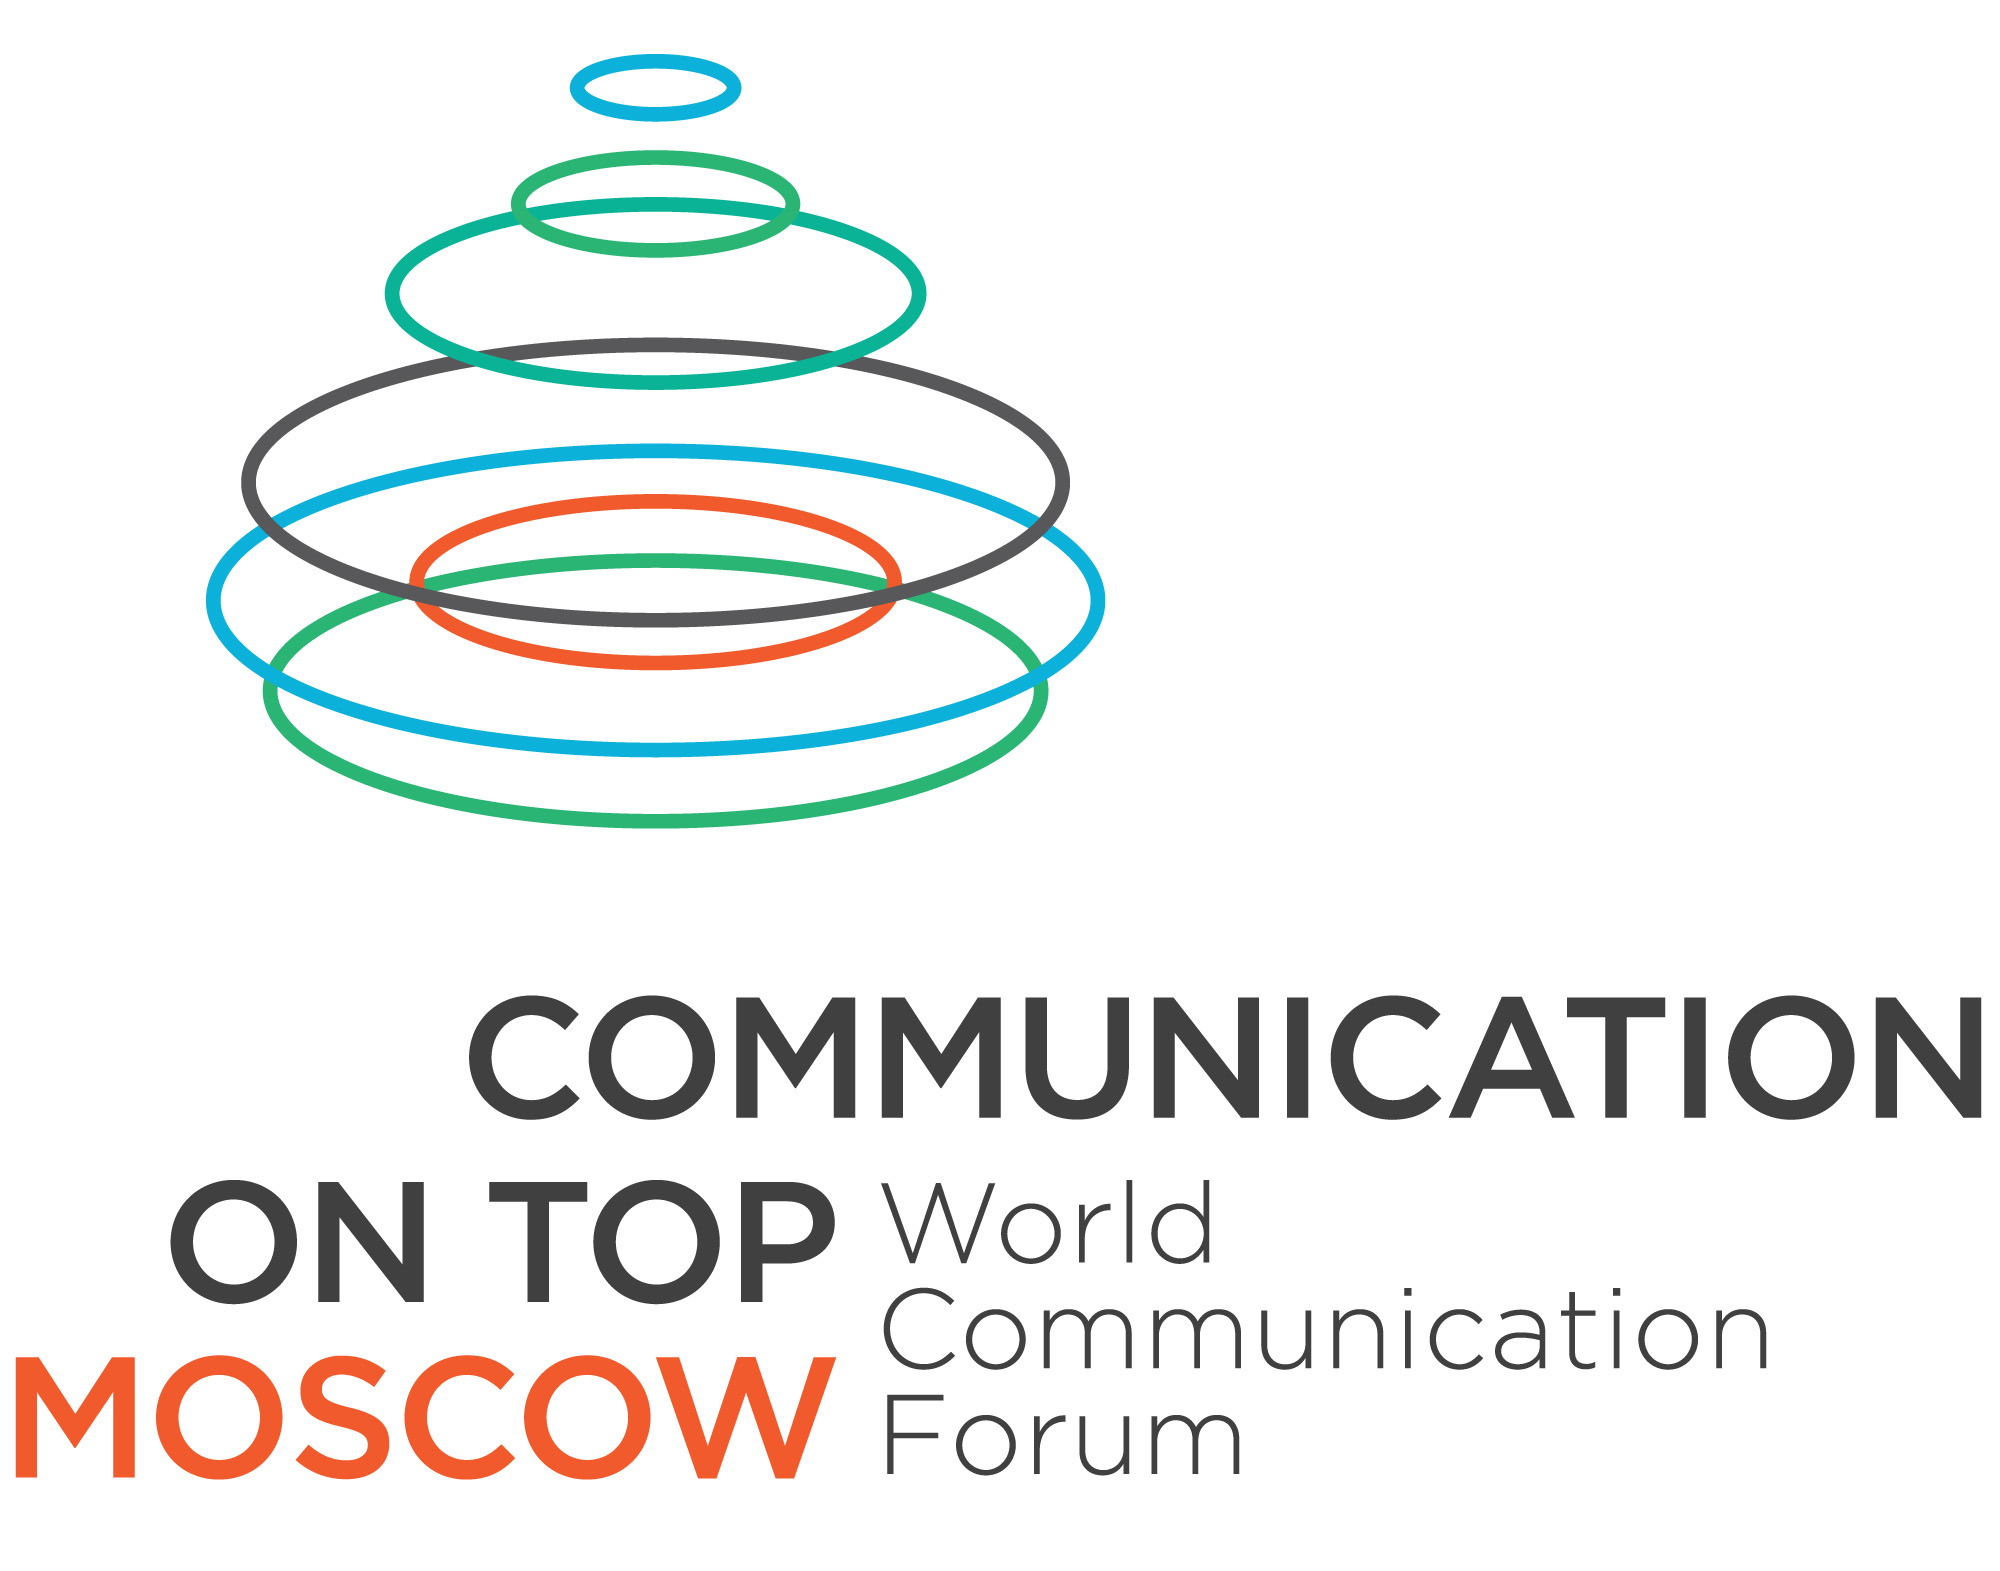 world communication forum, moscow regional session, depot wpf, visual storytelling, визуальный сторителлинг, креатив, брендинг